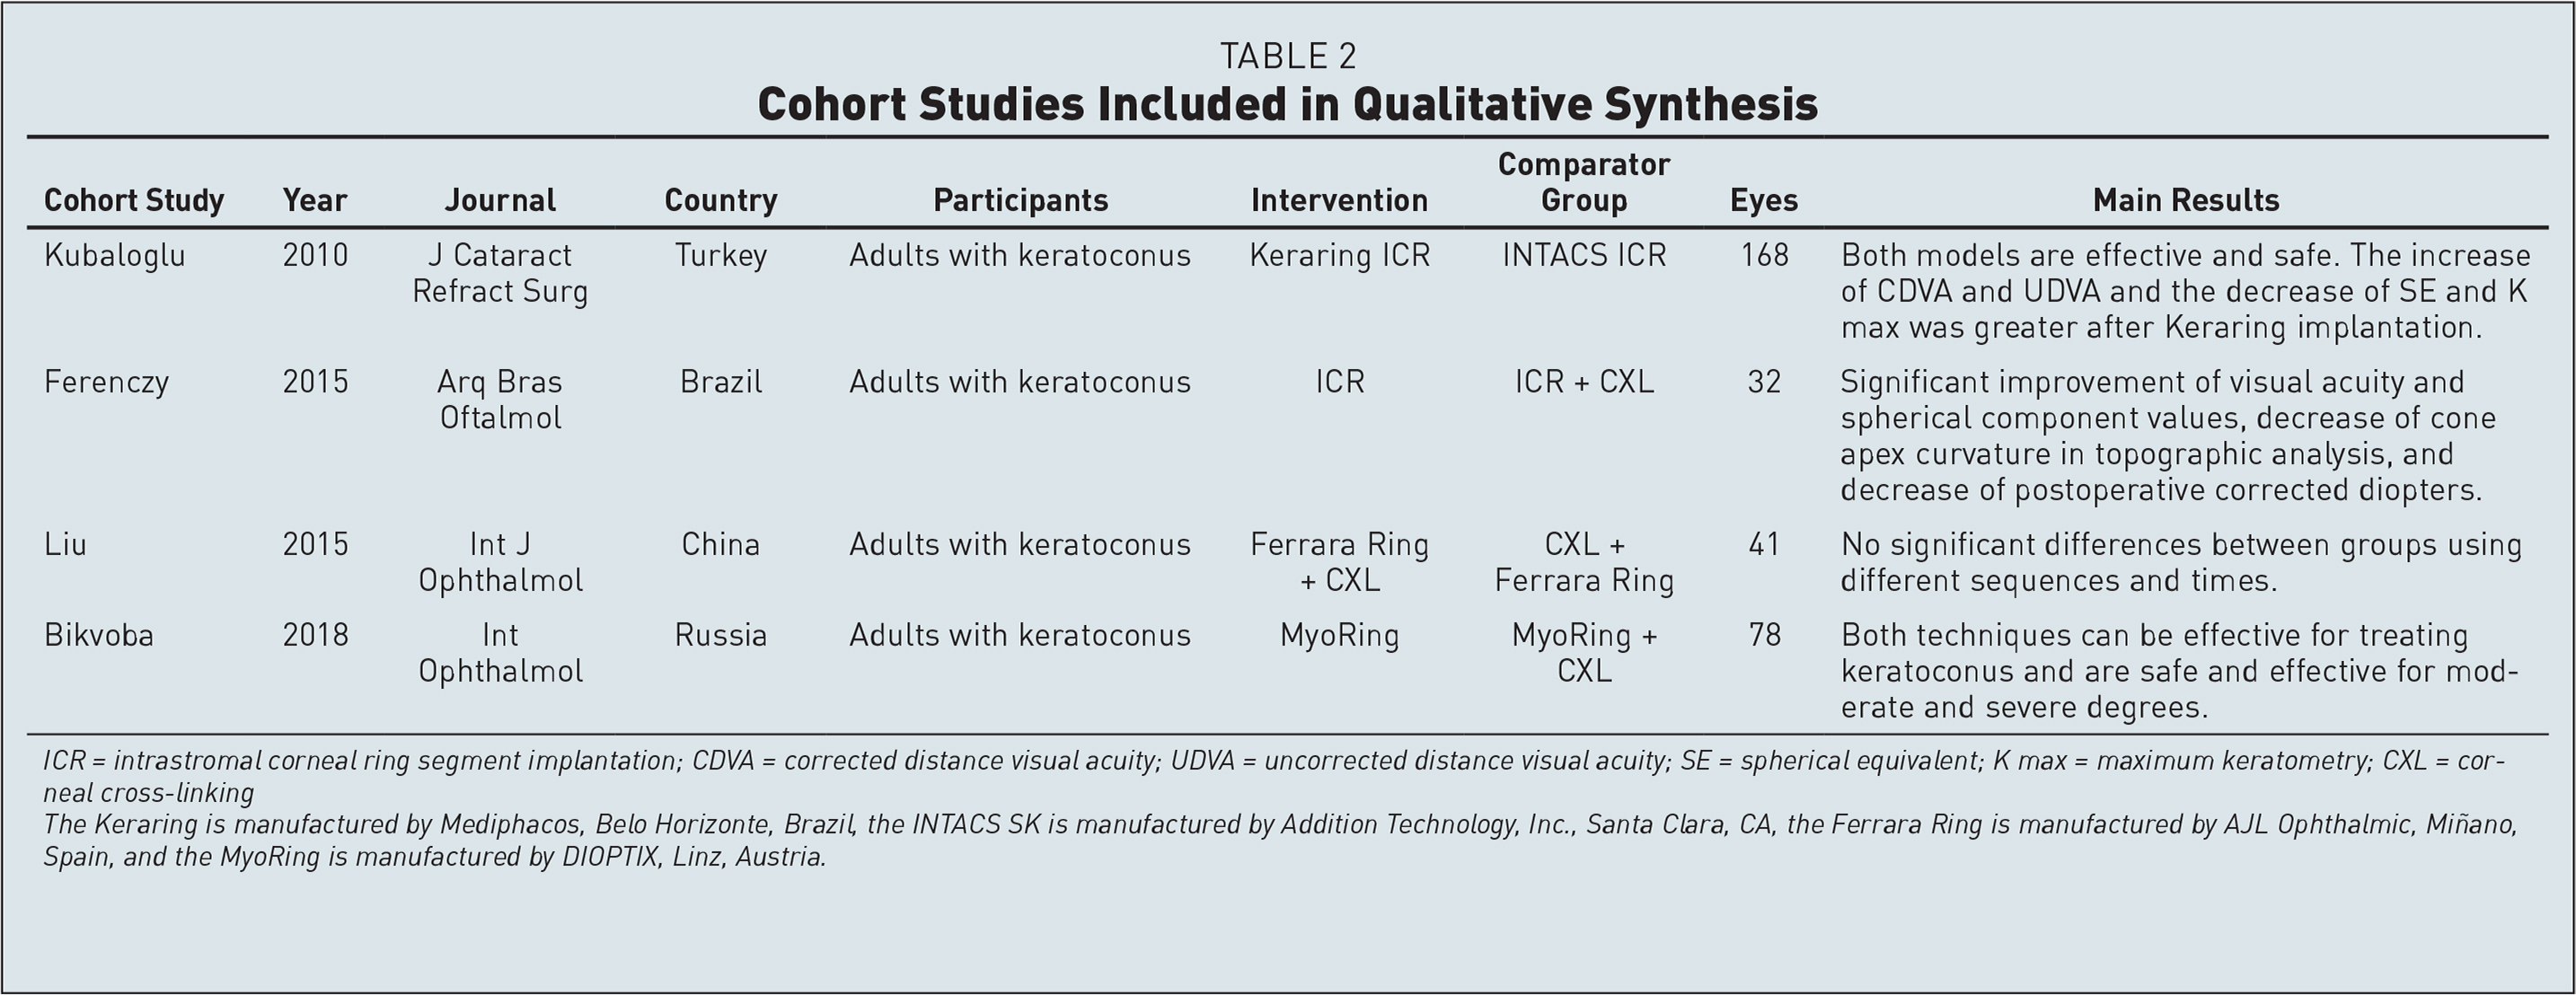 Cohort Studies Included in Qualitative Synthesis